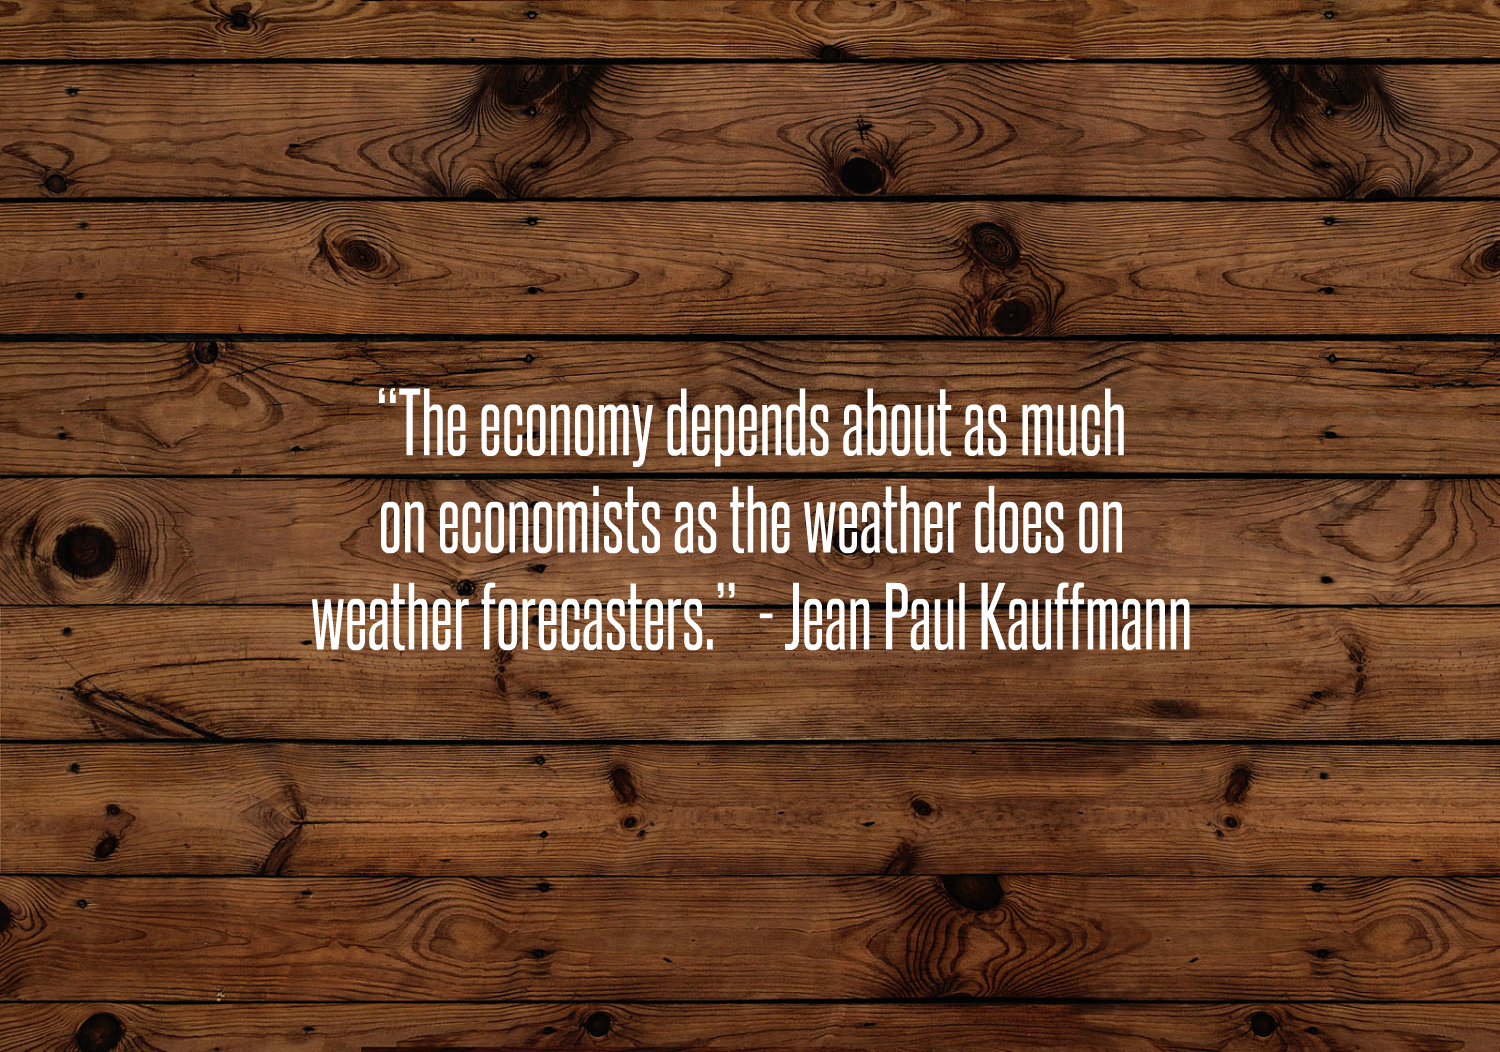 Quote - Jean Paul Kauffman.jpg